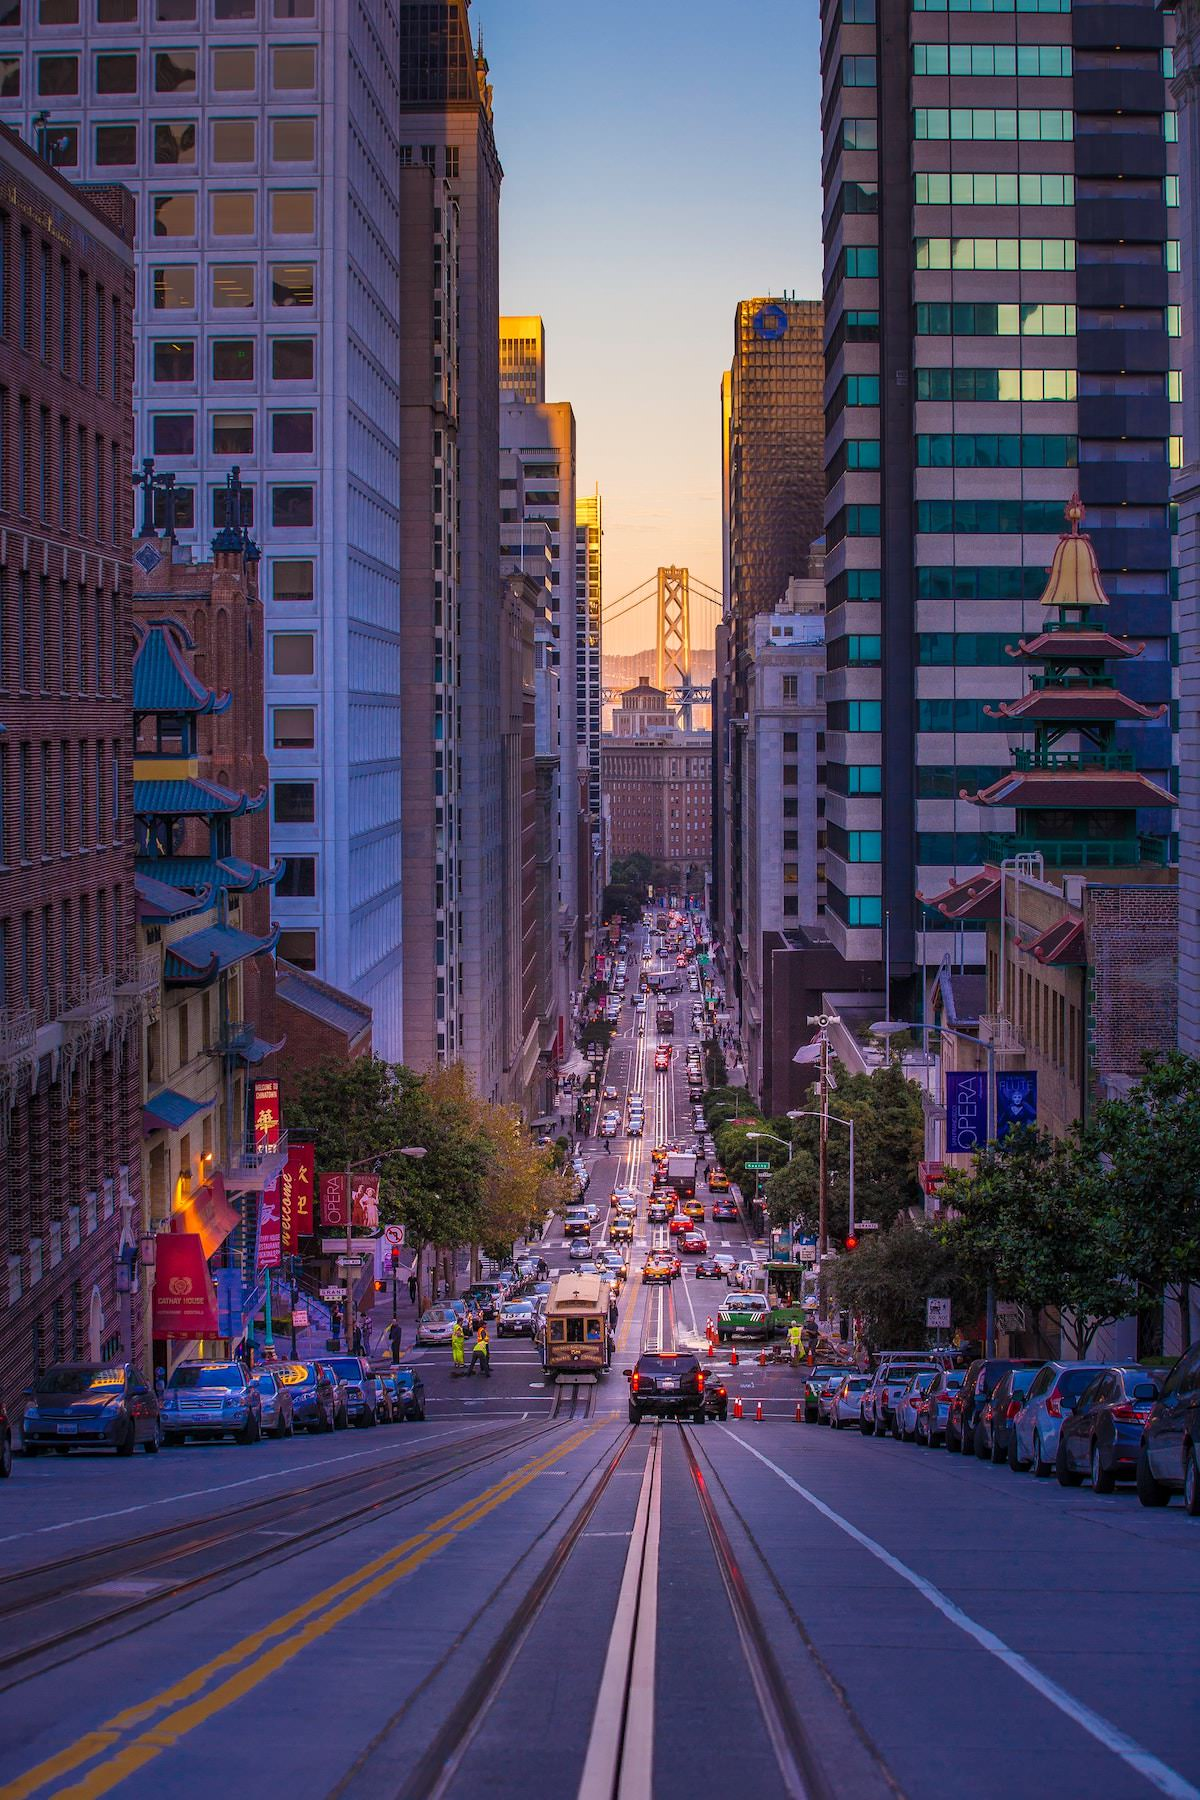 where is that shot of san francisco looking down a street with a bridge in the middle of the buildings exact location